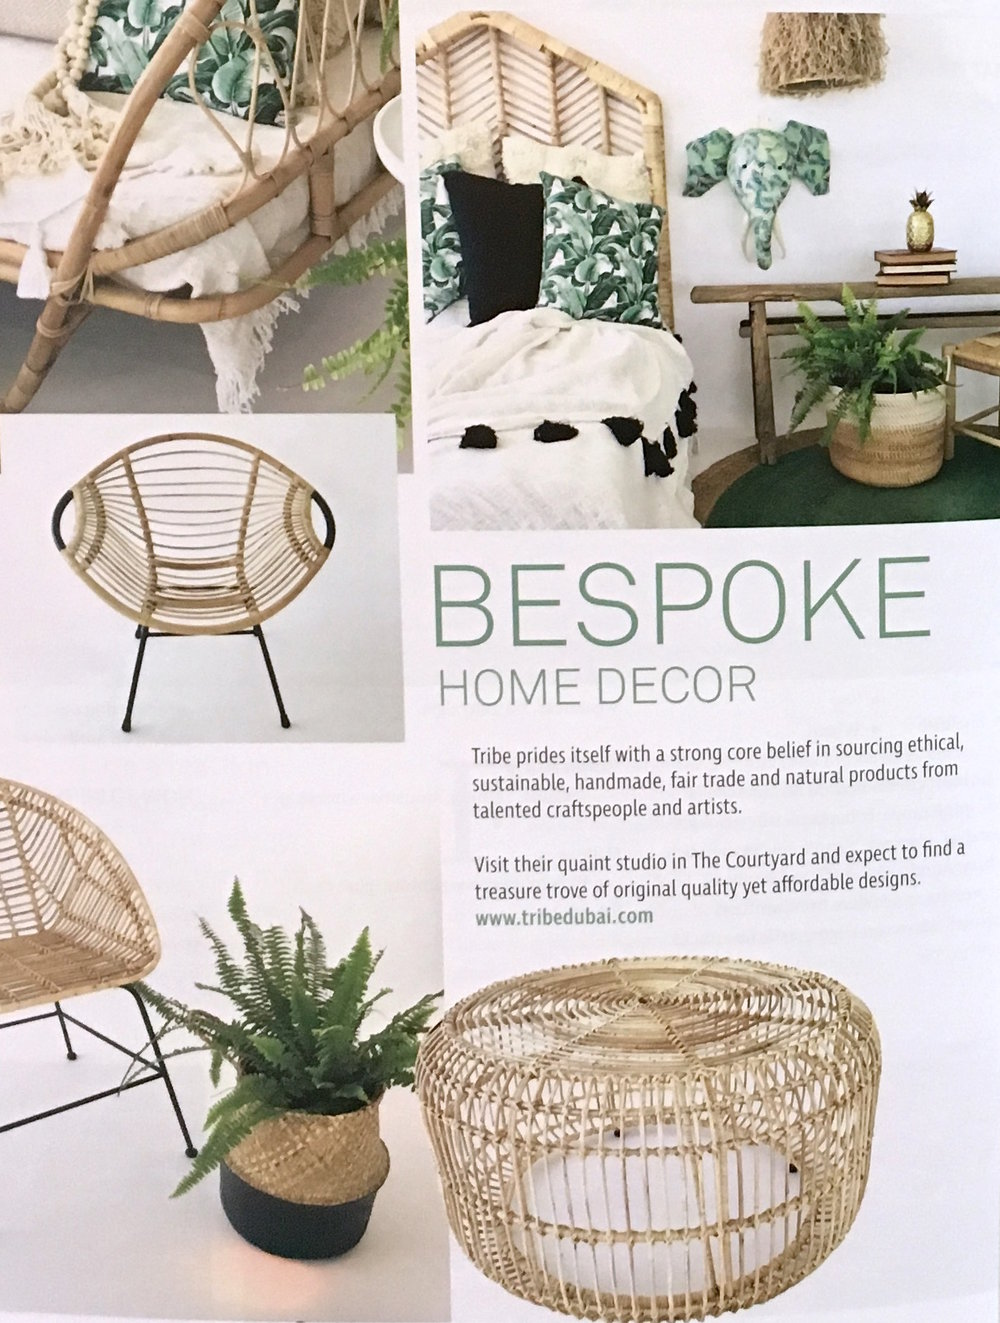 """<span style=""""font-family:Helvetica;letter-spacing:2px;font-size:10px;color:rgba(28,28,28,0.8)""""><b>AWAKENINGS MAGAZINE</b></span><br><i>may 2017</i>"""